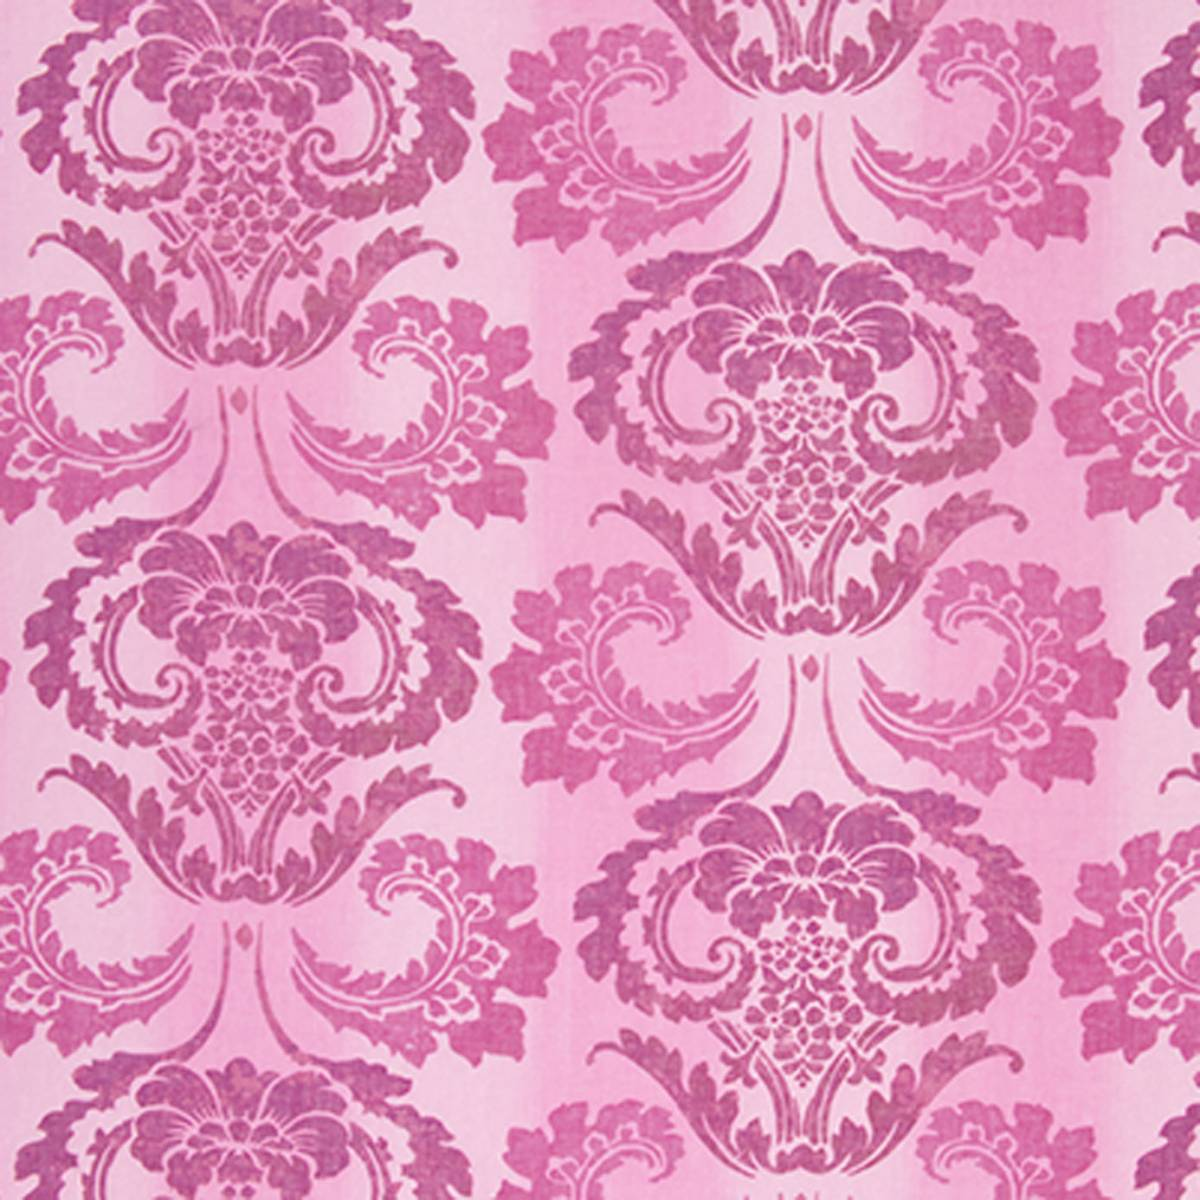 Curtains In Byzantium Fabric Magenta F2043 02 Designers Guild Astrakhan